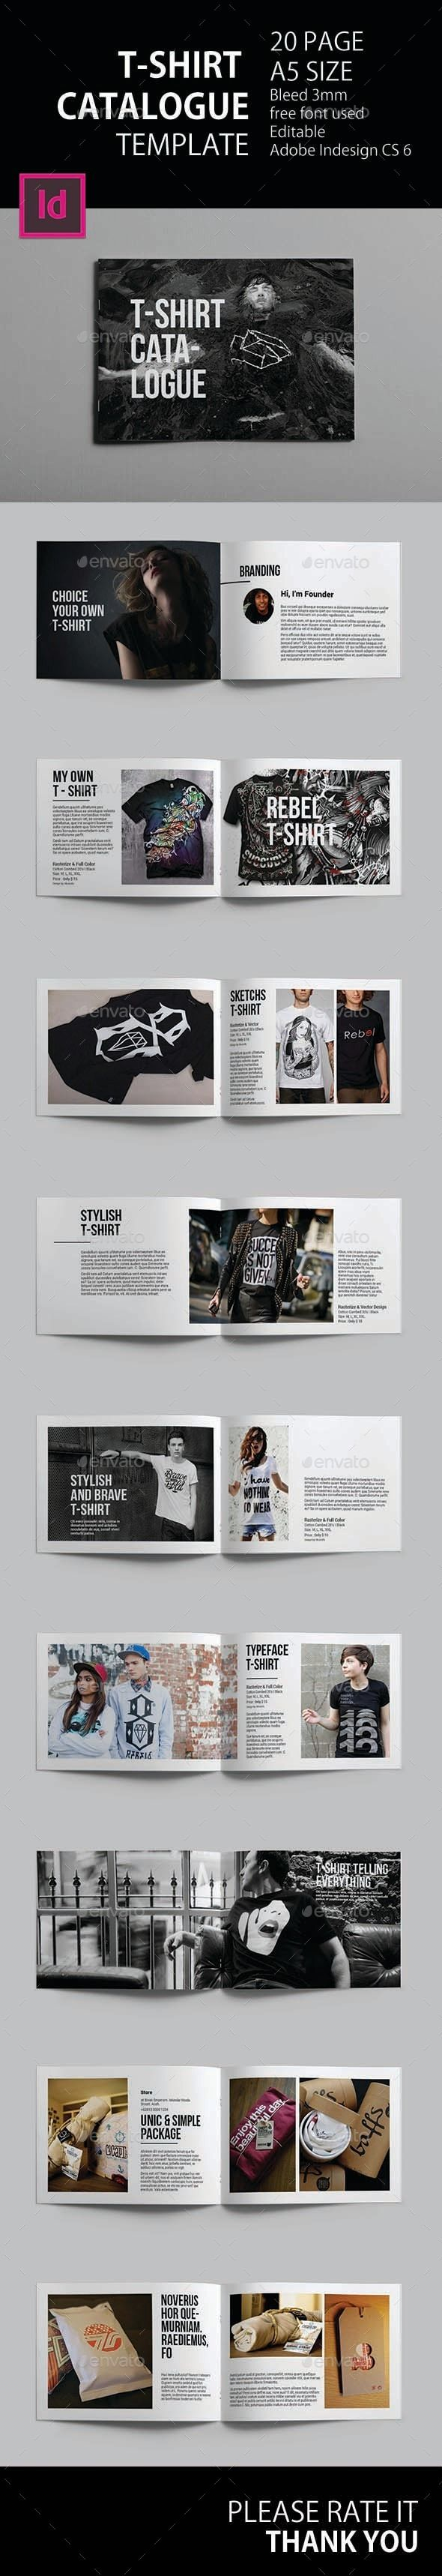 T-Shirt Catalogue Template | Template, Catalog and Adobe indesign